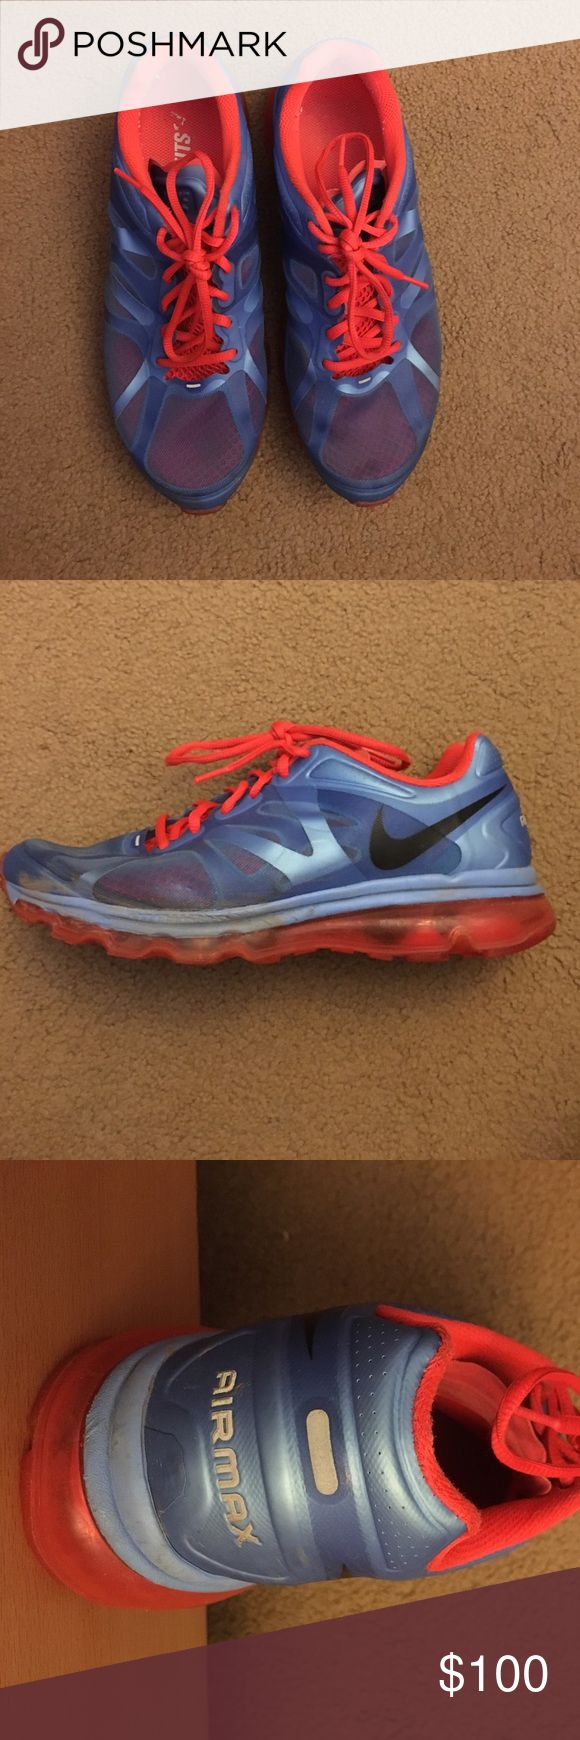 Nike Air Max Sneakers Lightly worn, bright orange and blue Nike sneakers. Comfortable and in good condition. Nike Shoes Sneakers